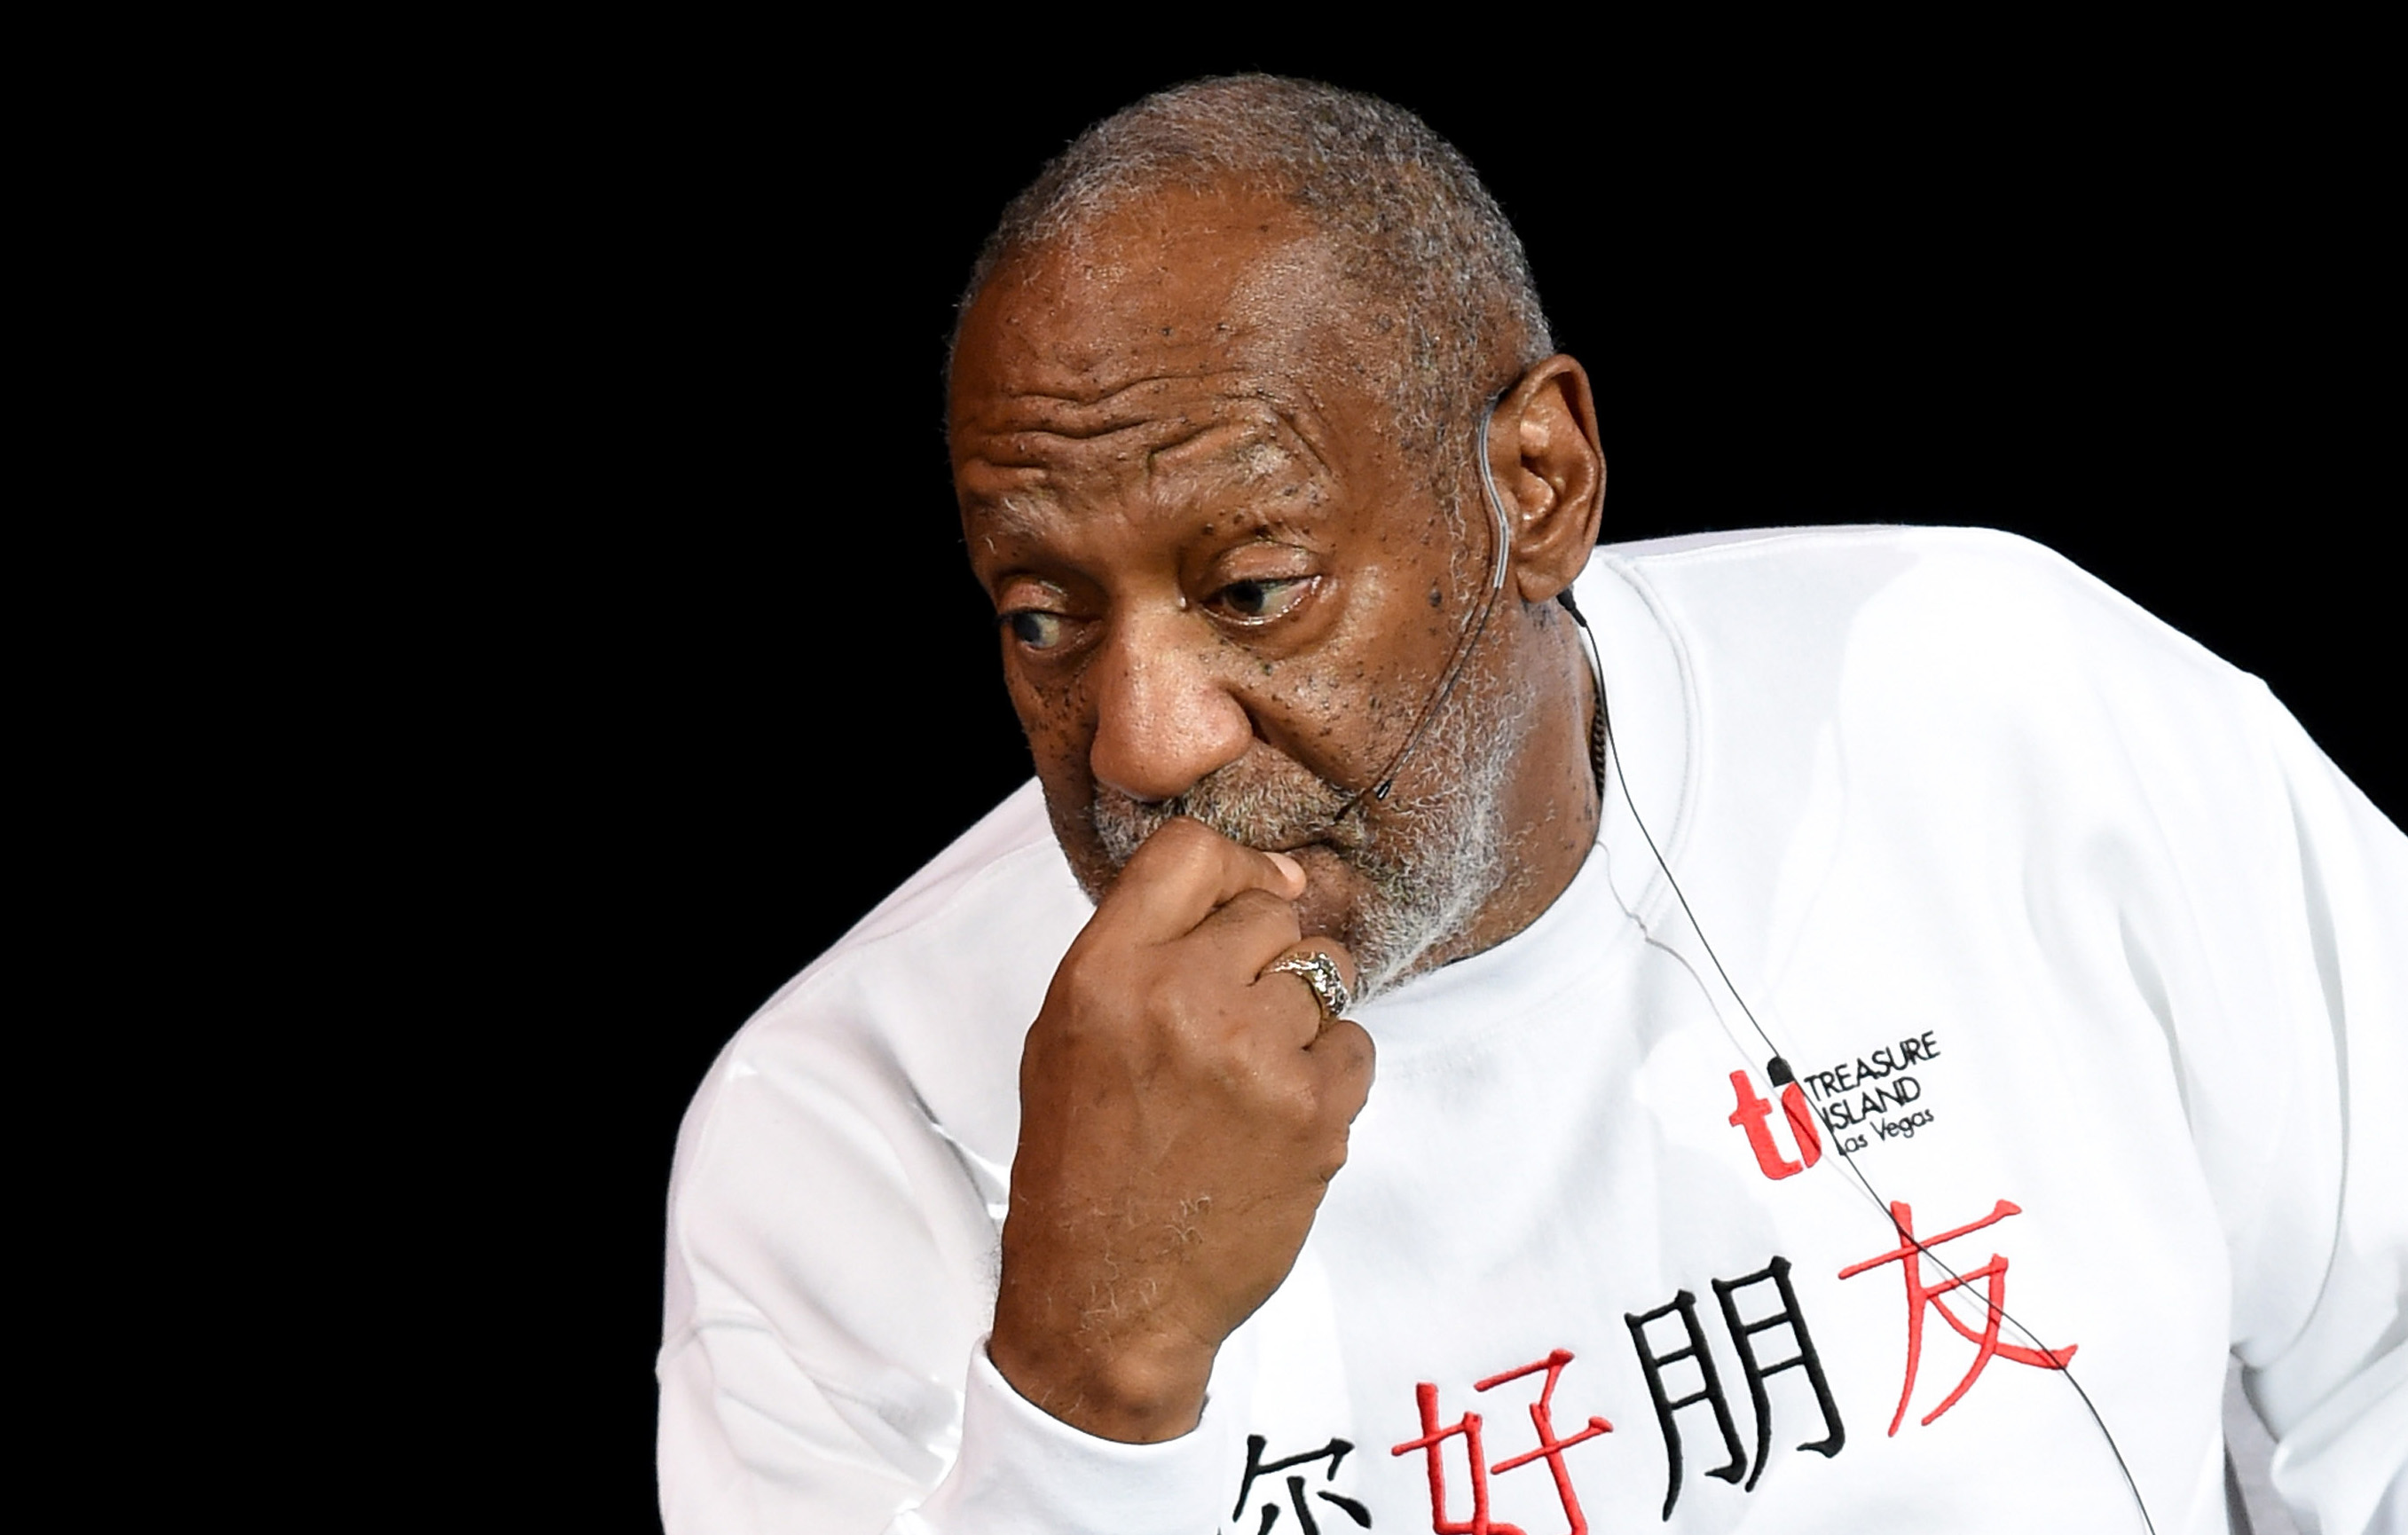 Cosby shows canceled in latest fallout from allegations